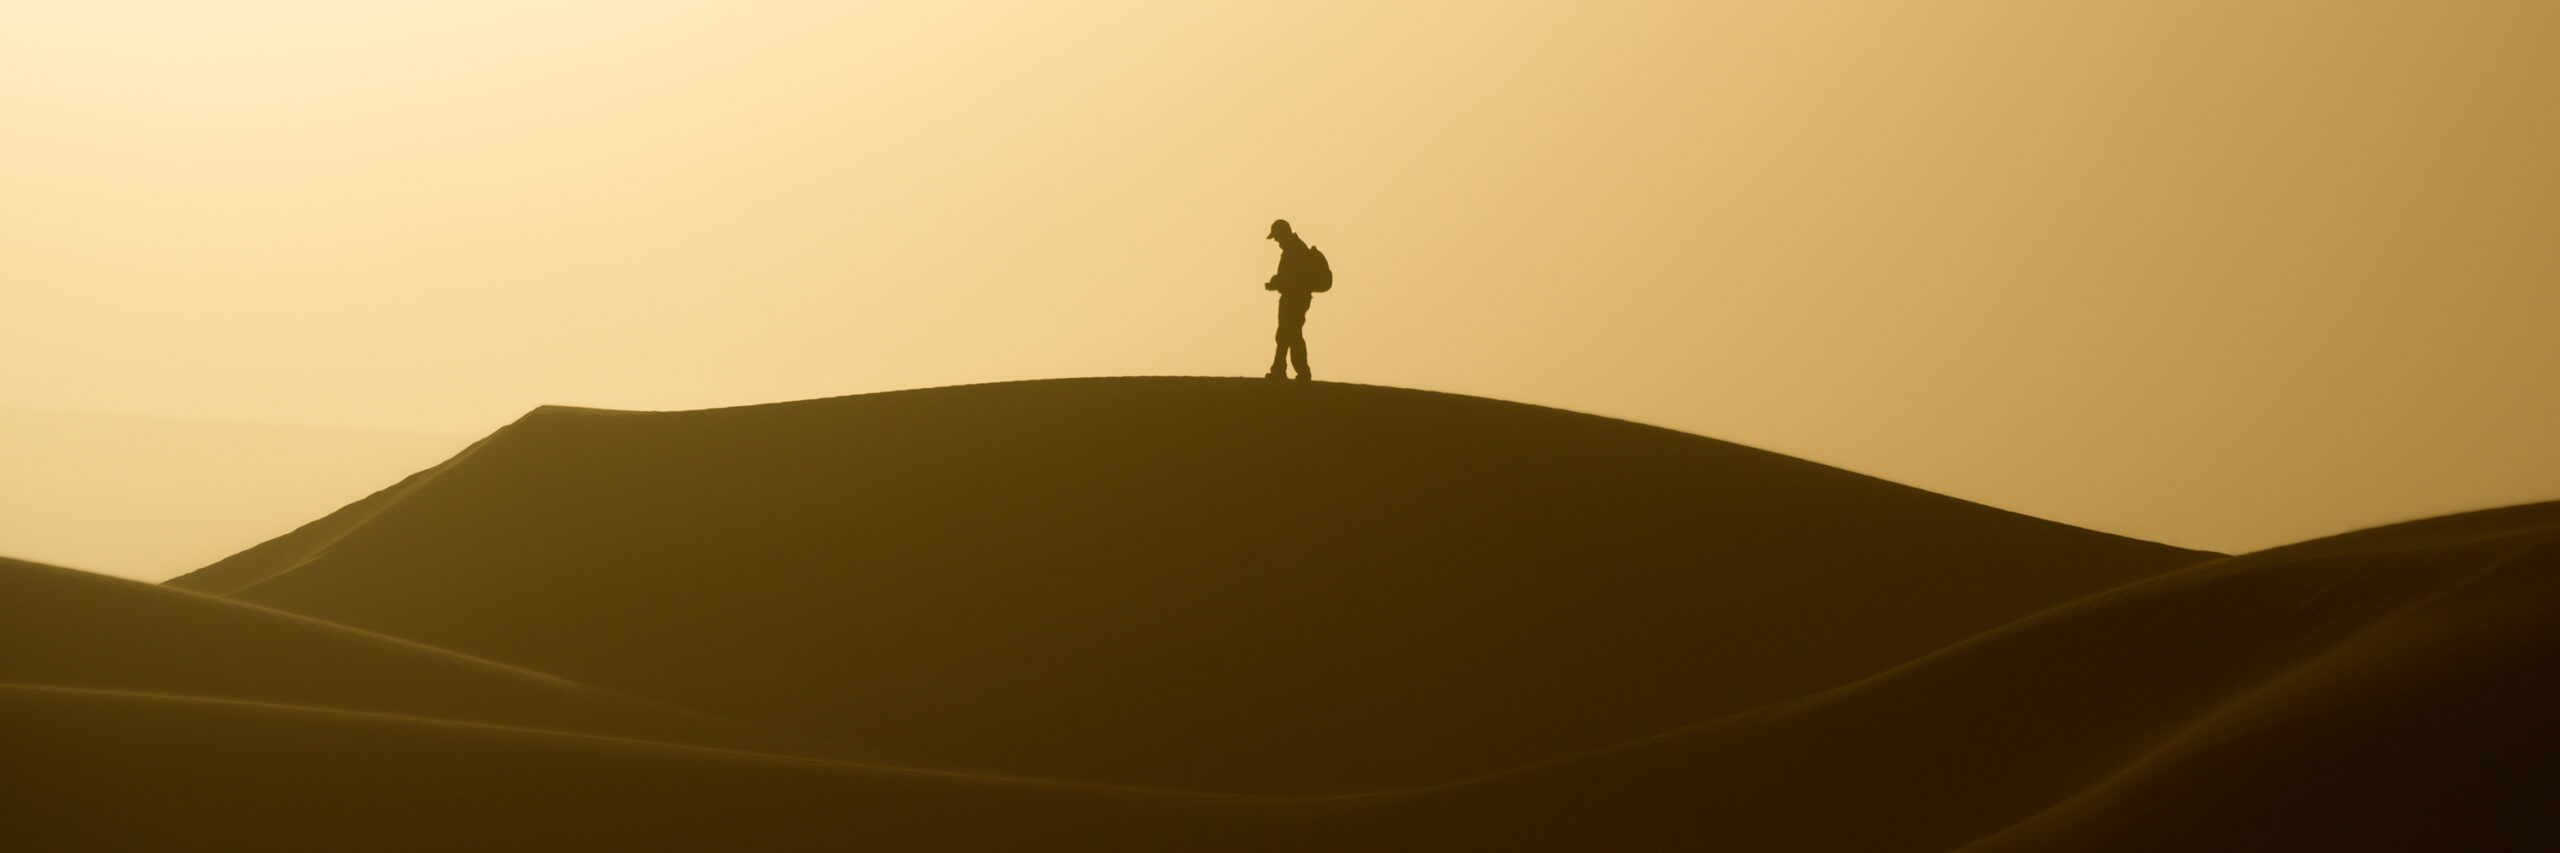 A photographer standing on a dune in a desert